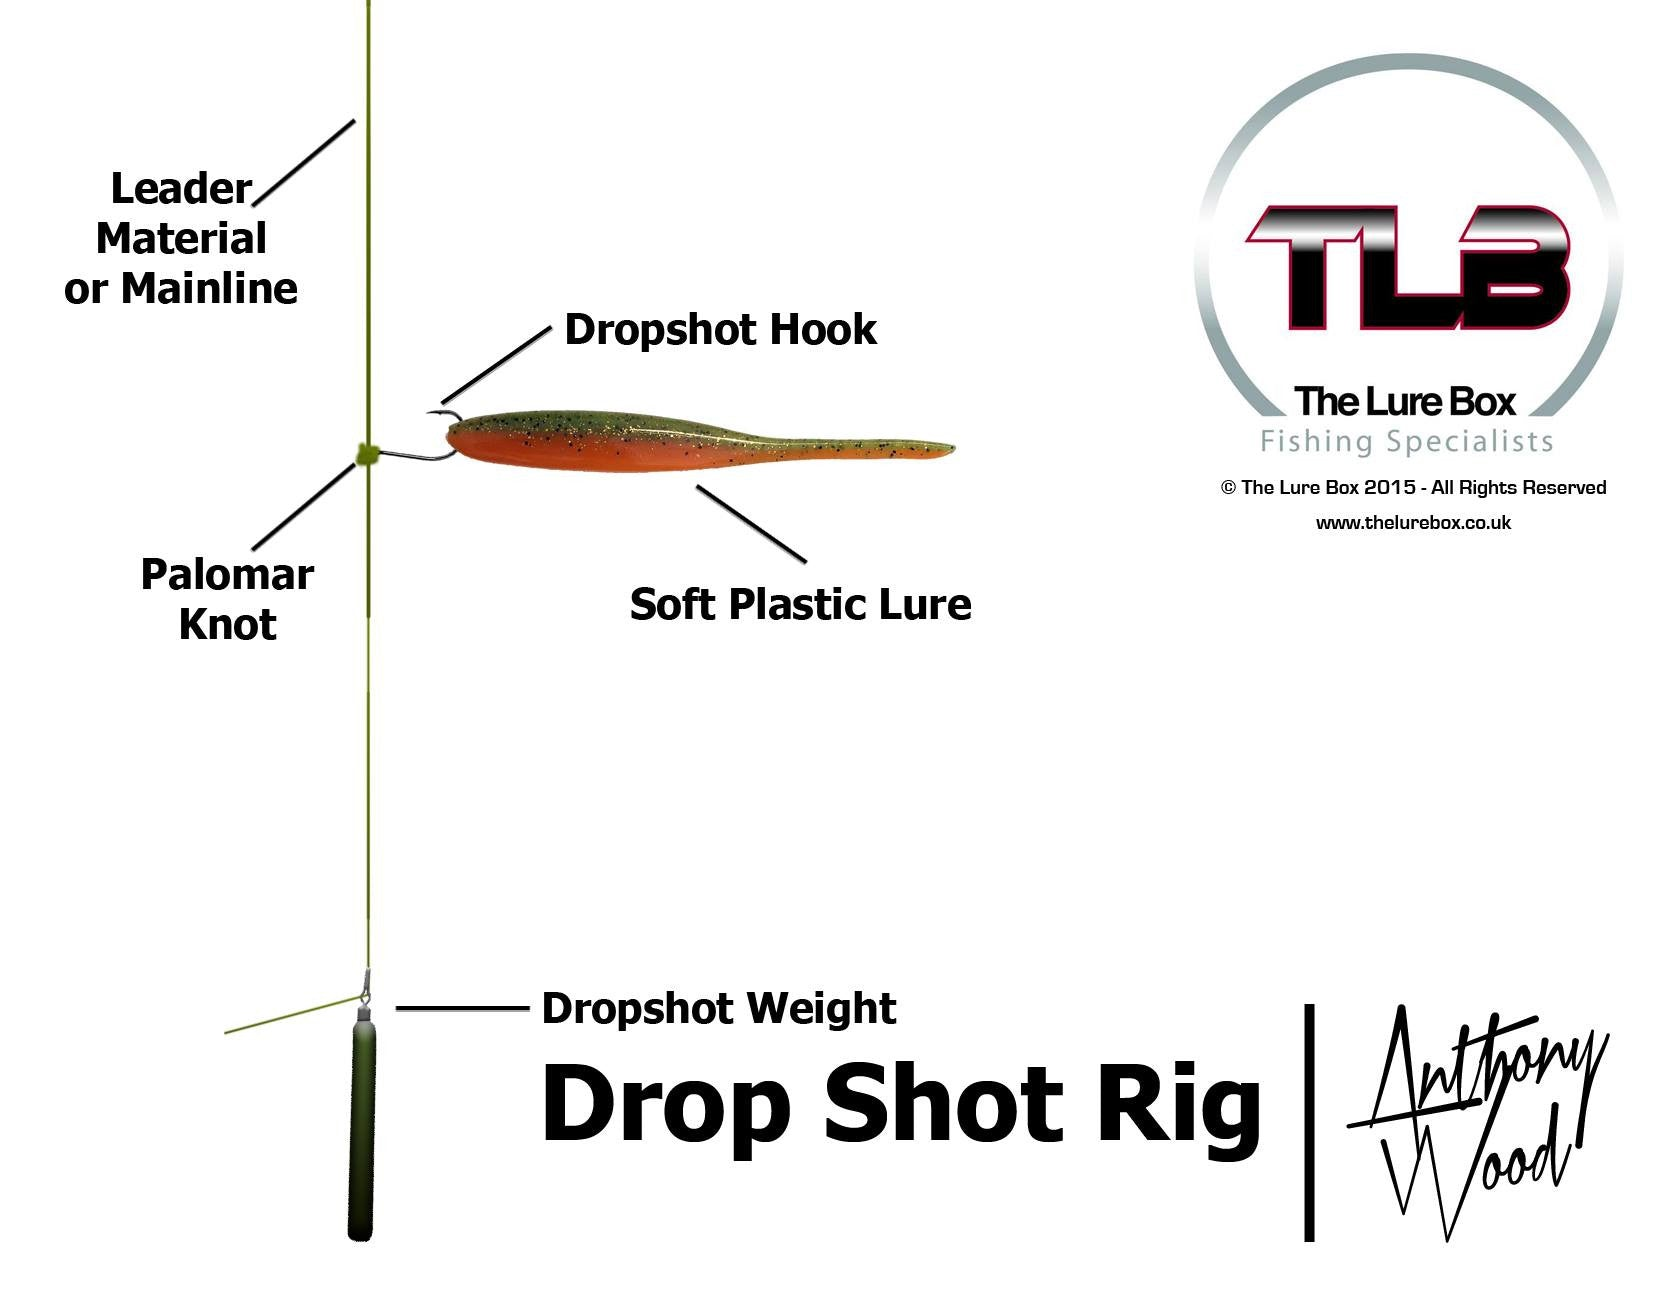 Dropshot Rig Diagram - The Lure Box